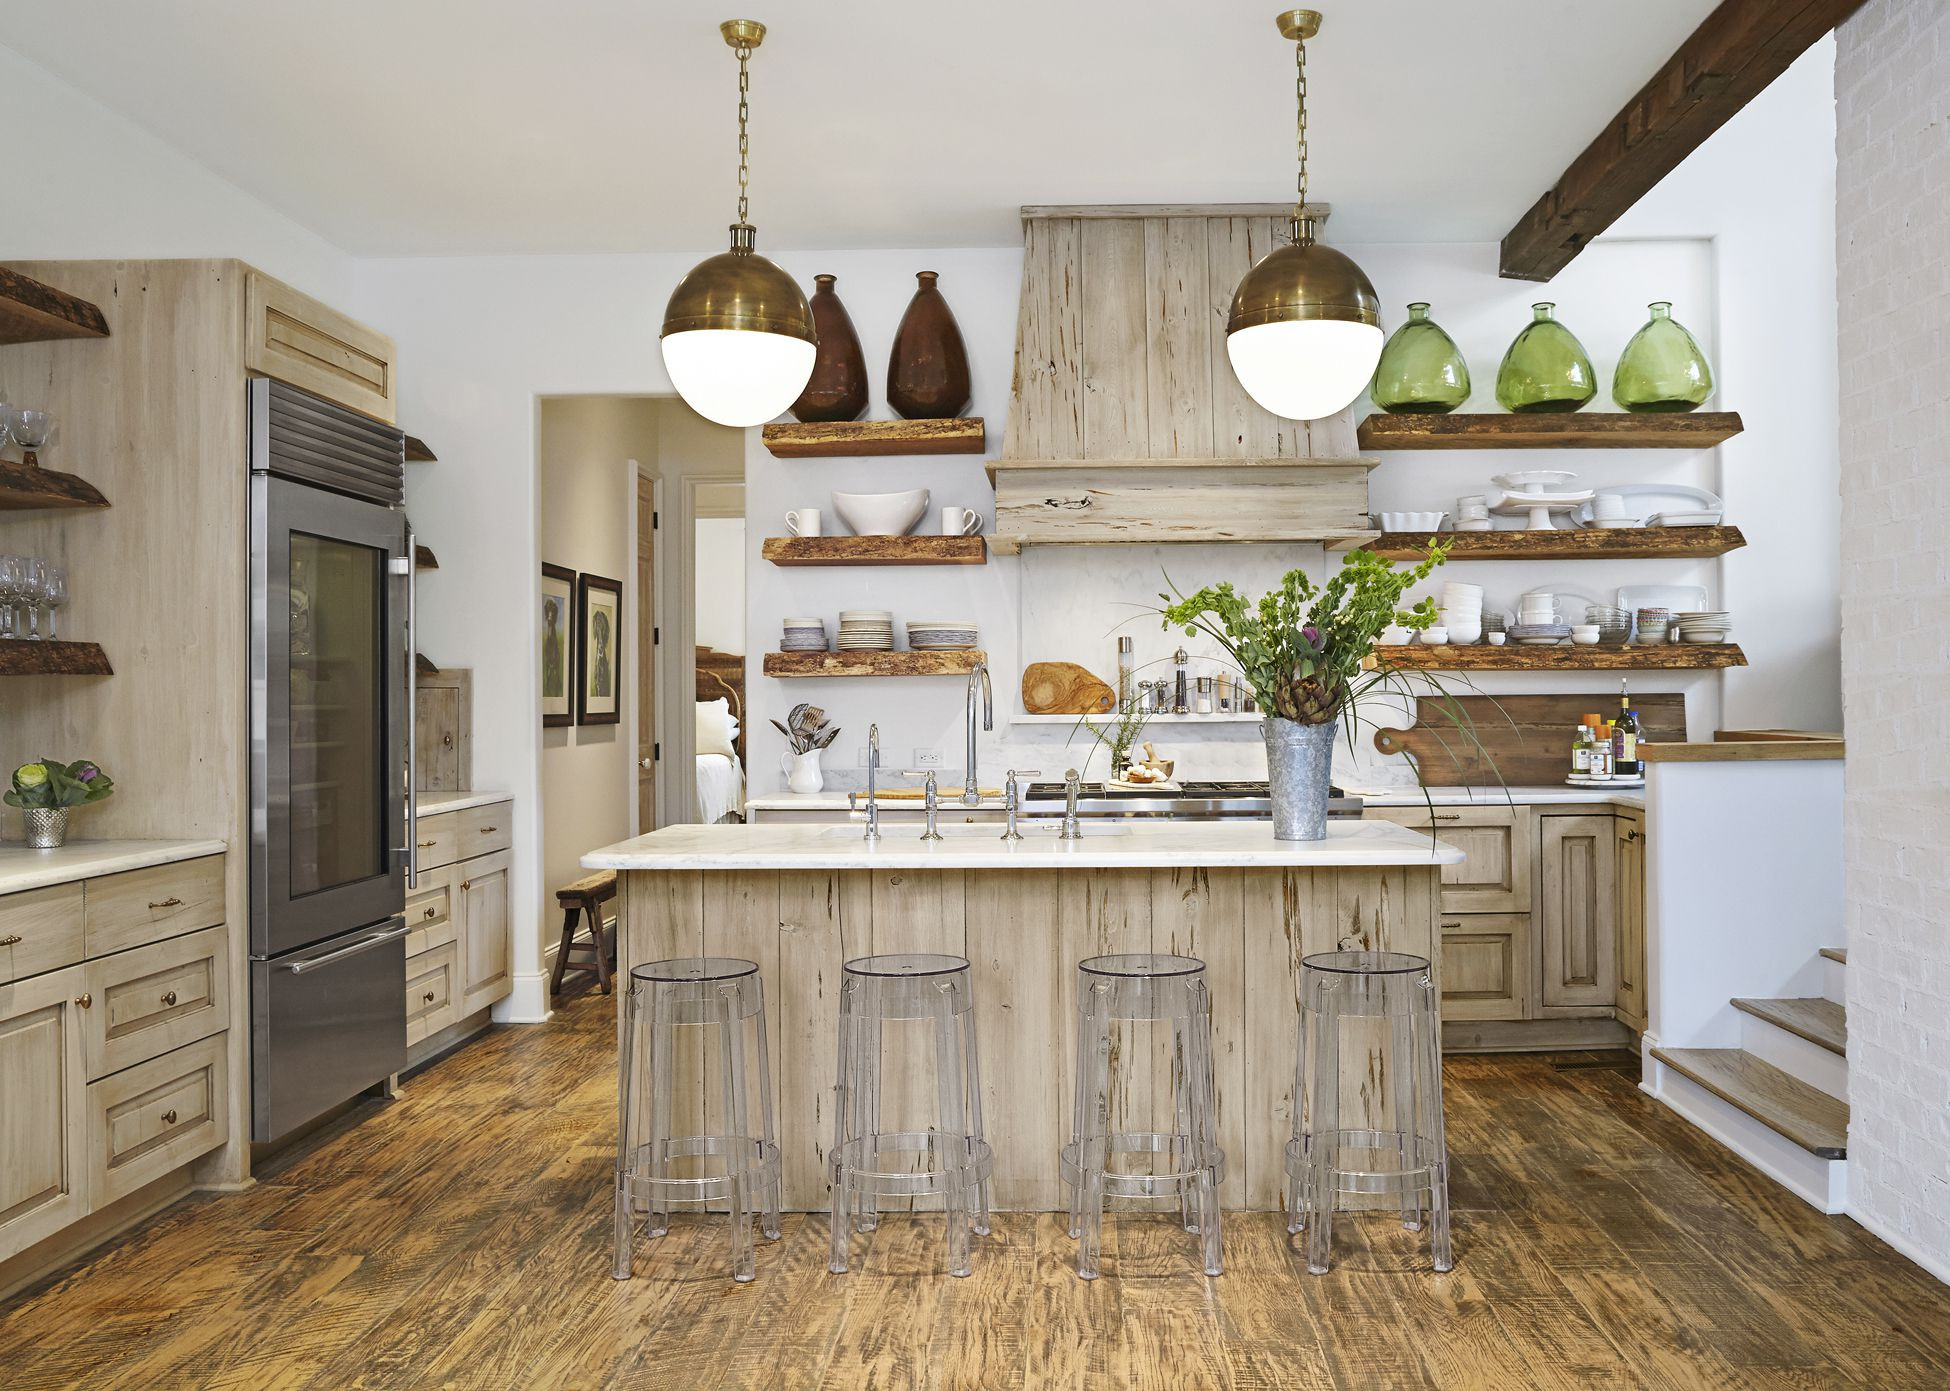 popular hardwood floor stain colors 2017 of 8 gorgeous kitchen trends that will be huge in 2018 for 1483474851 kitchen reinvention reclaimed wood 0117